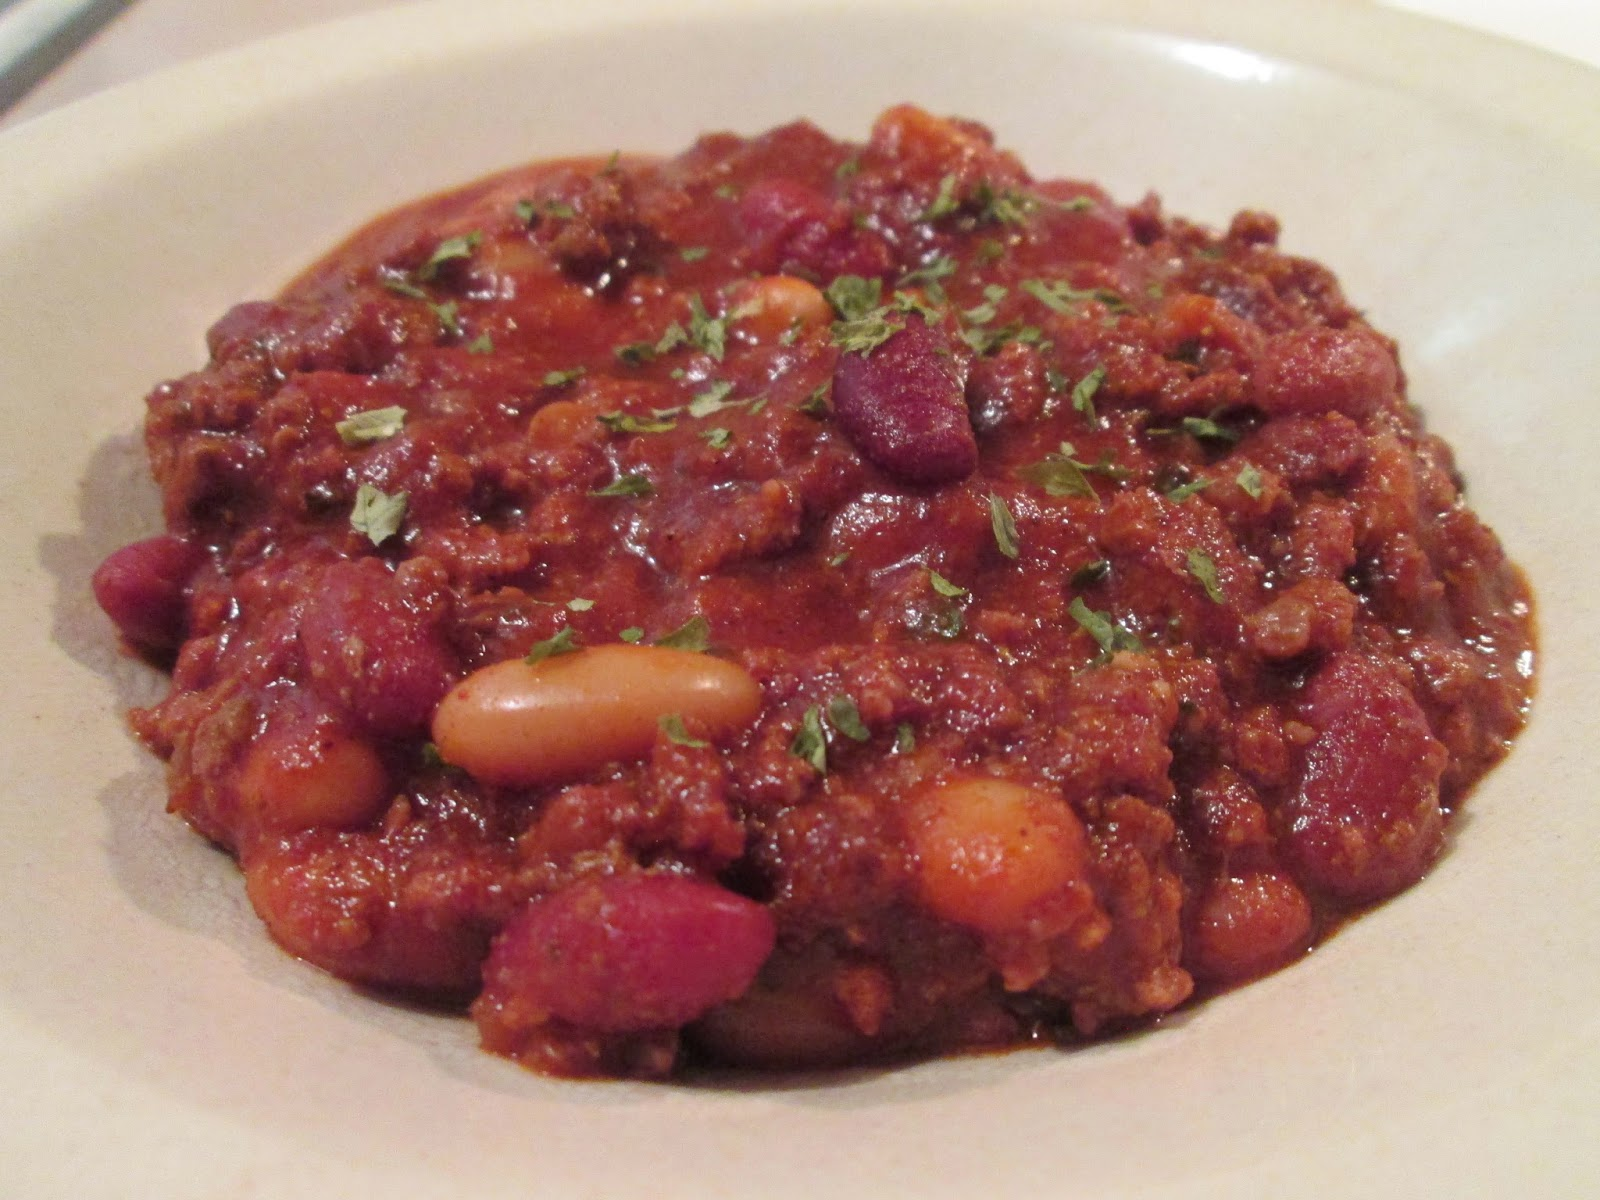 saturday's chili! - crock pot 3 bean buffalo chili